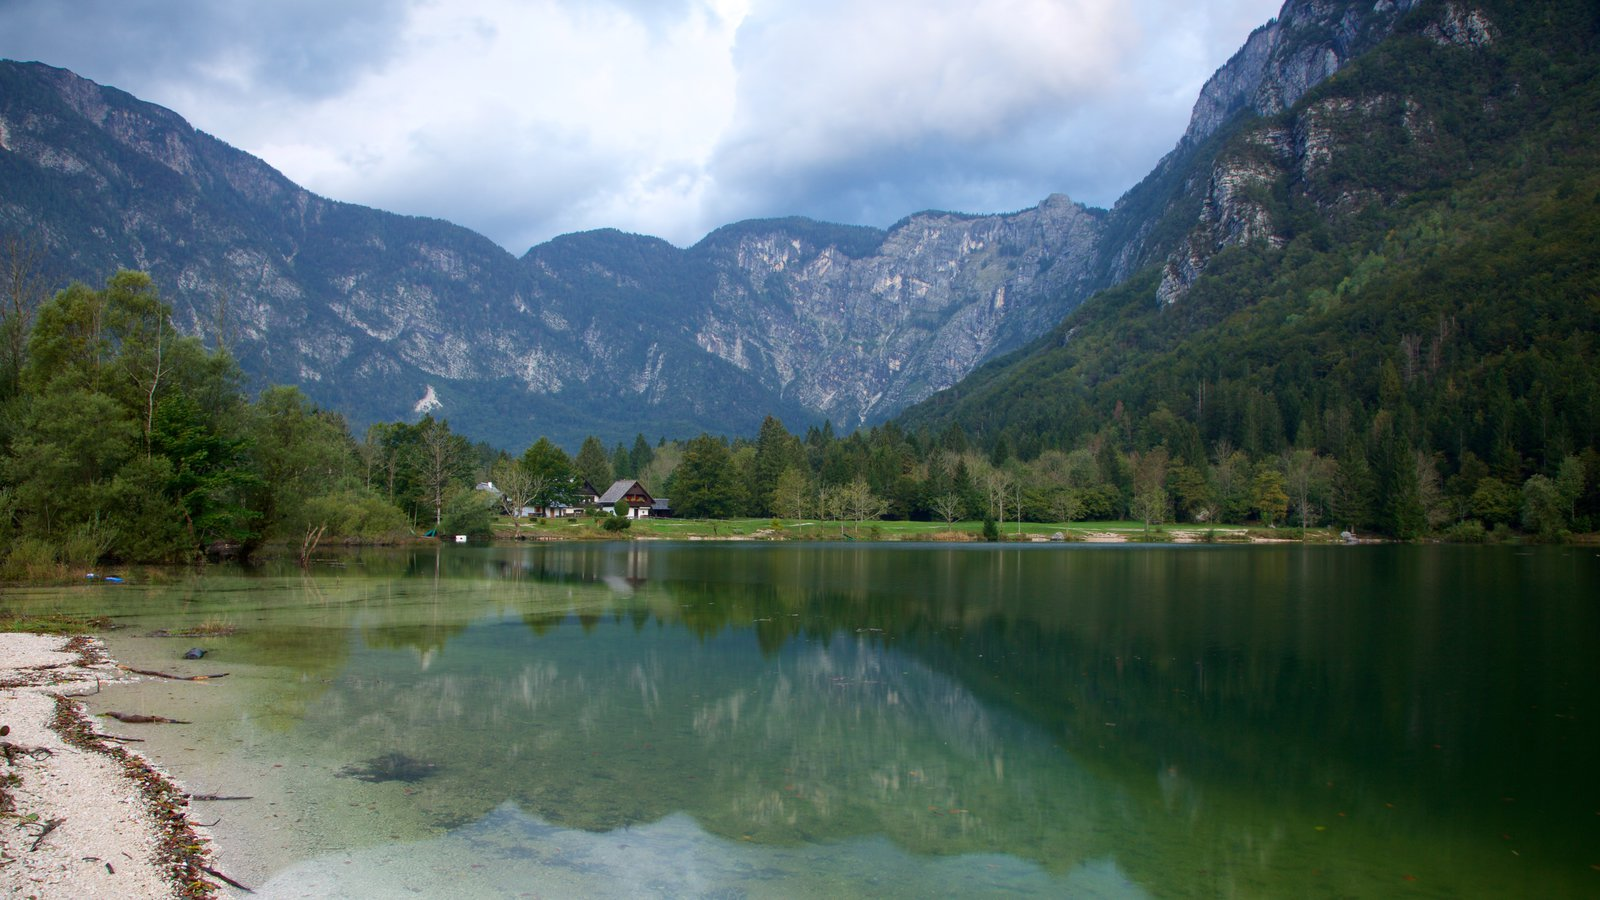 Lake Bohinj showing mountains and a lake or waterhole